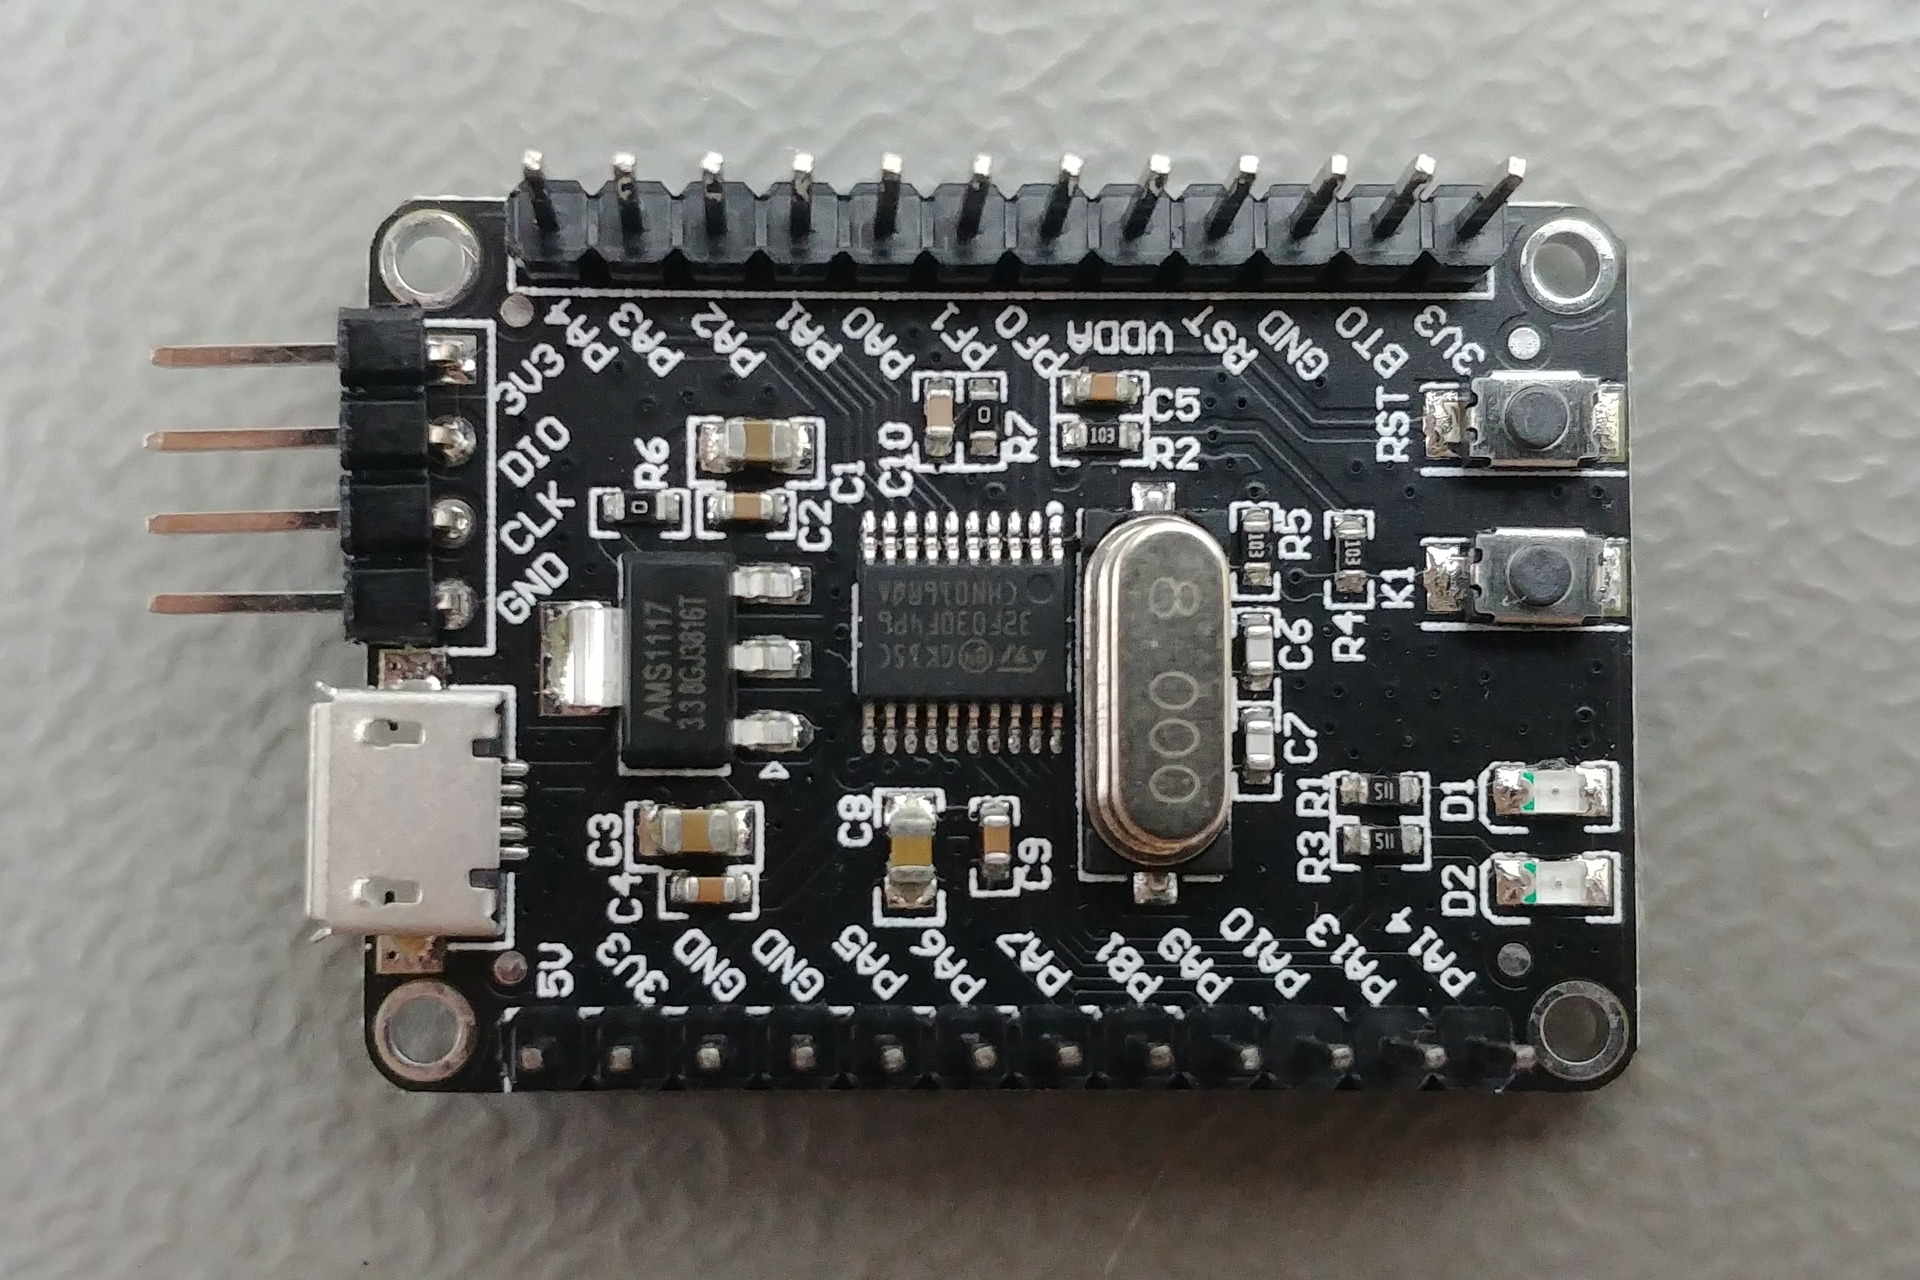 STM32_F030: Top view